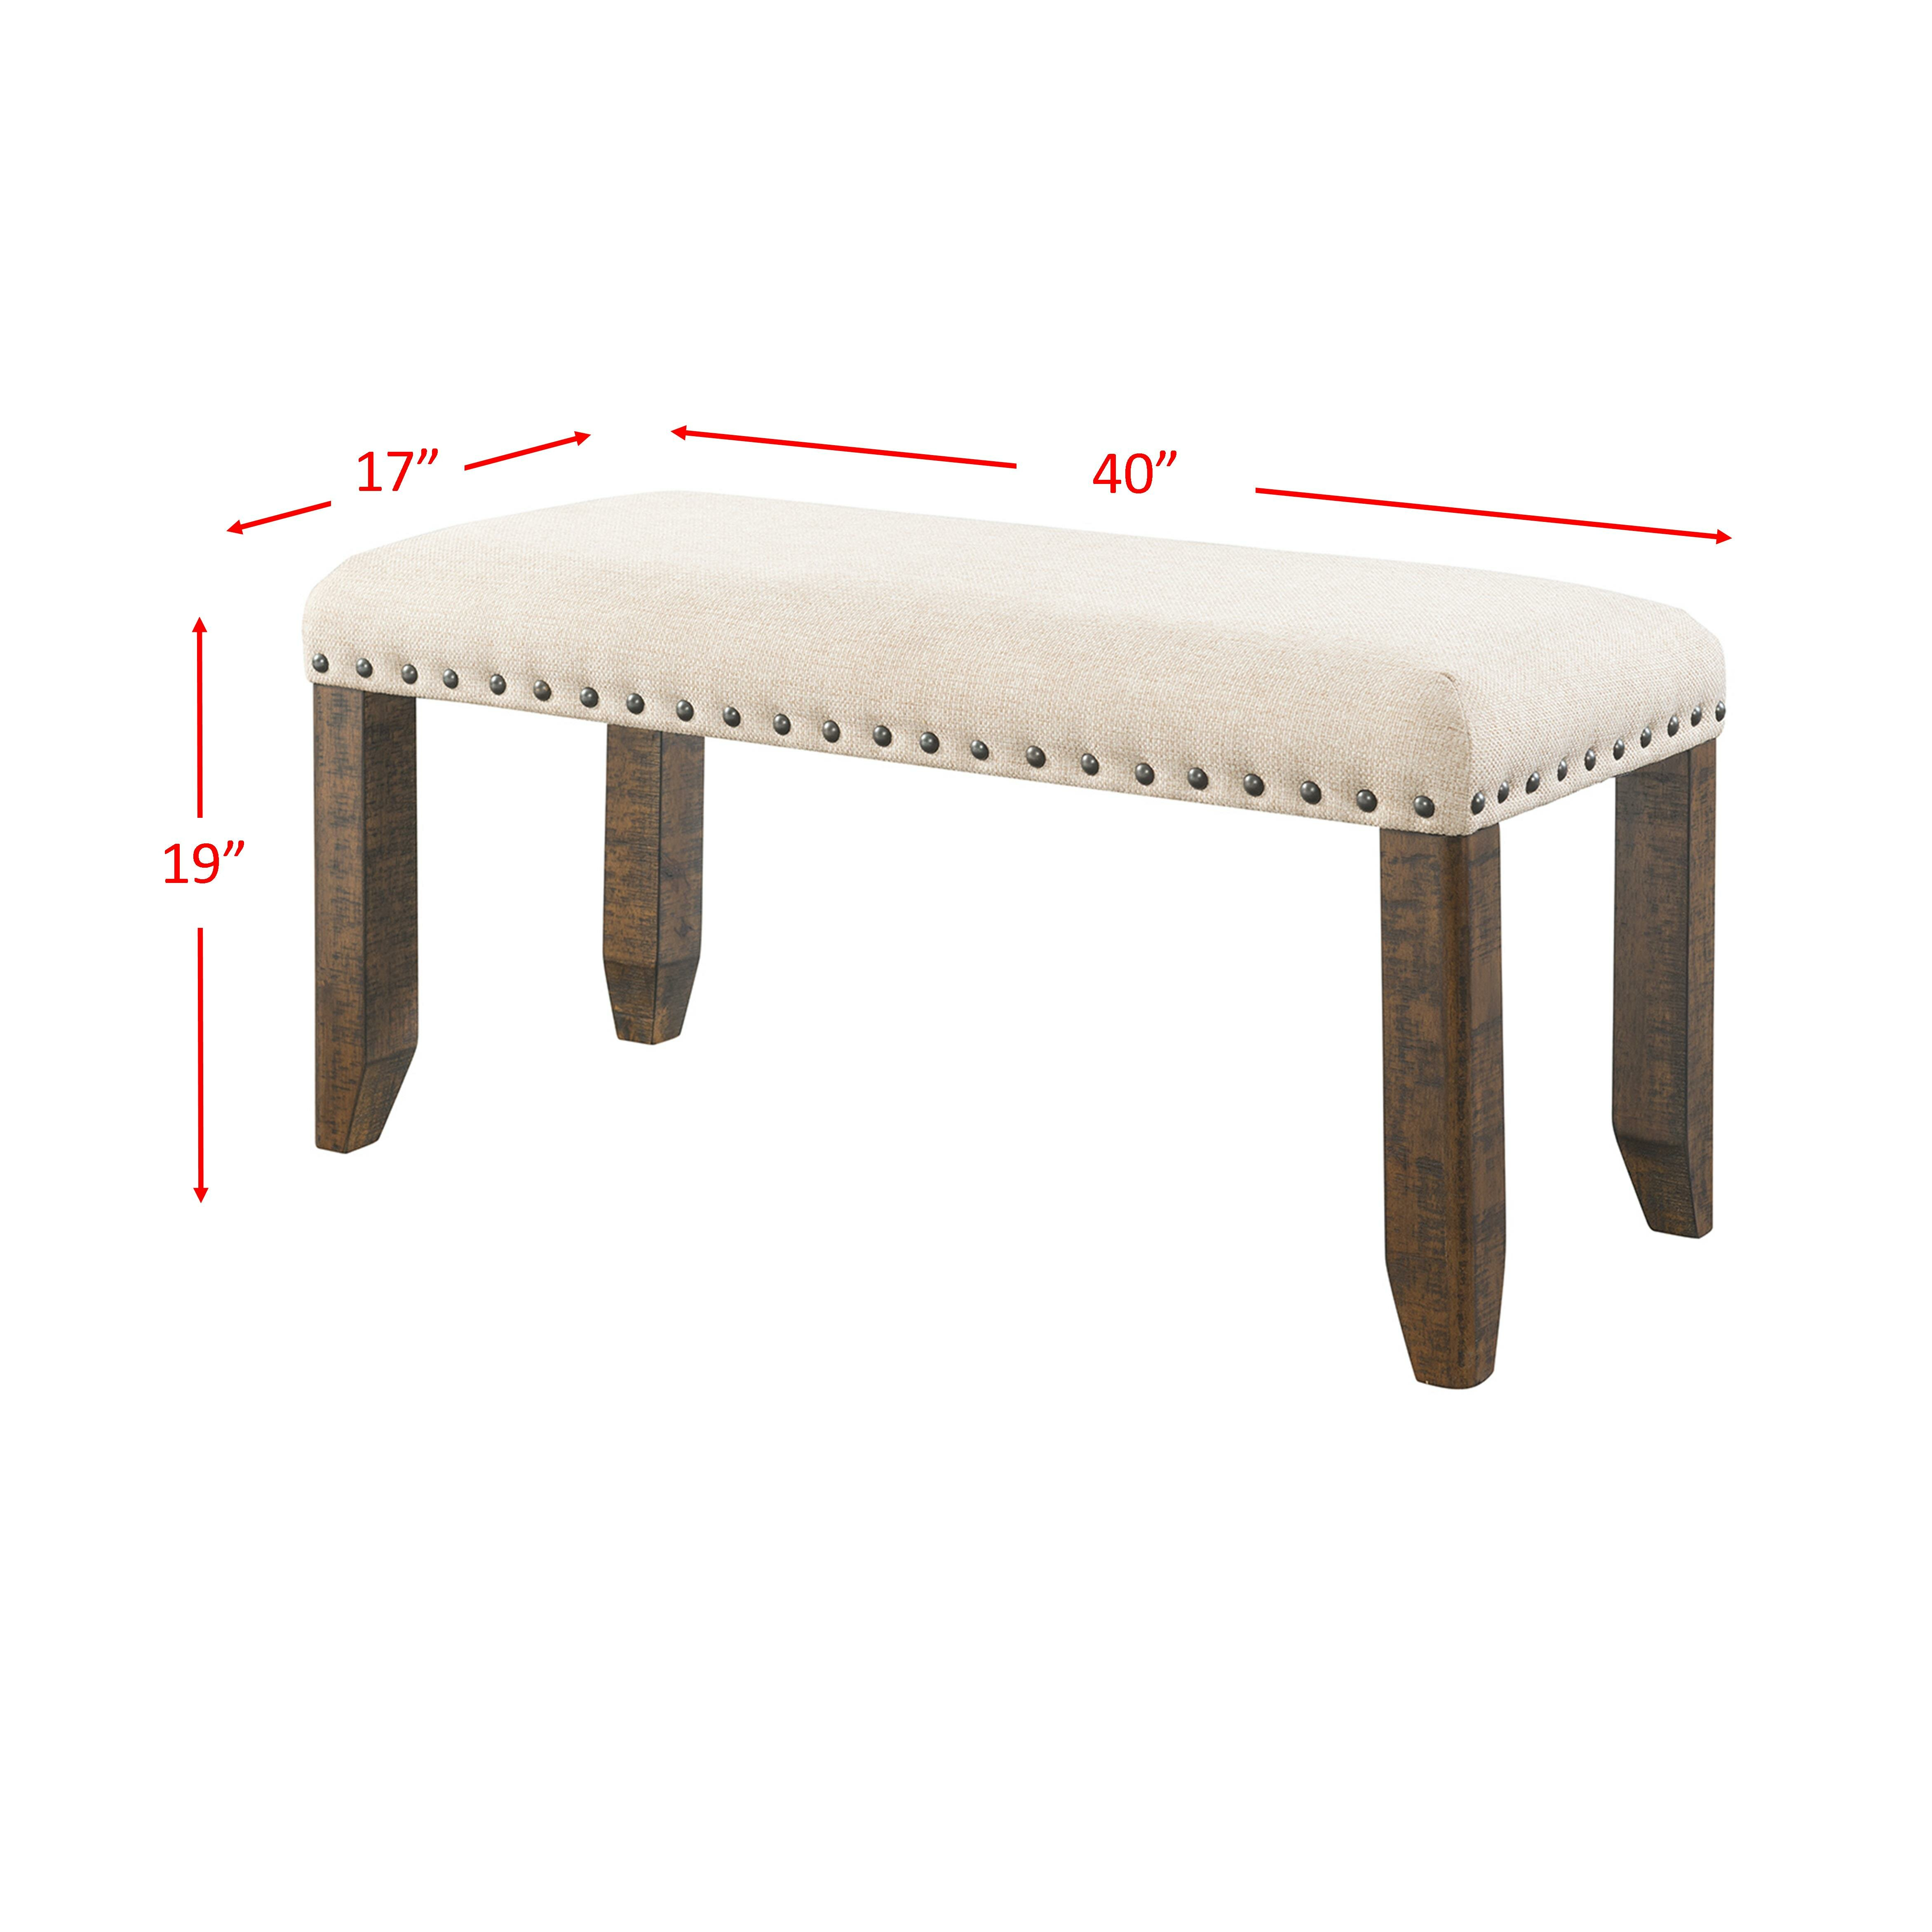 Laurel Foundry Modern Farmhouse Dearing Upholstered Kitchen Bench Reviews Wayfair